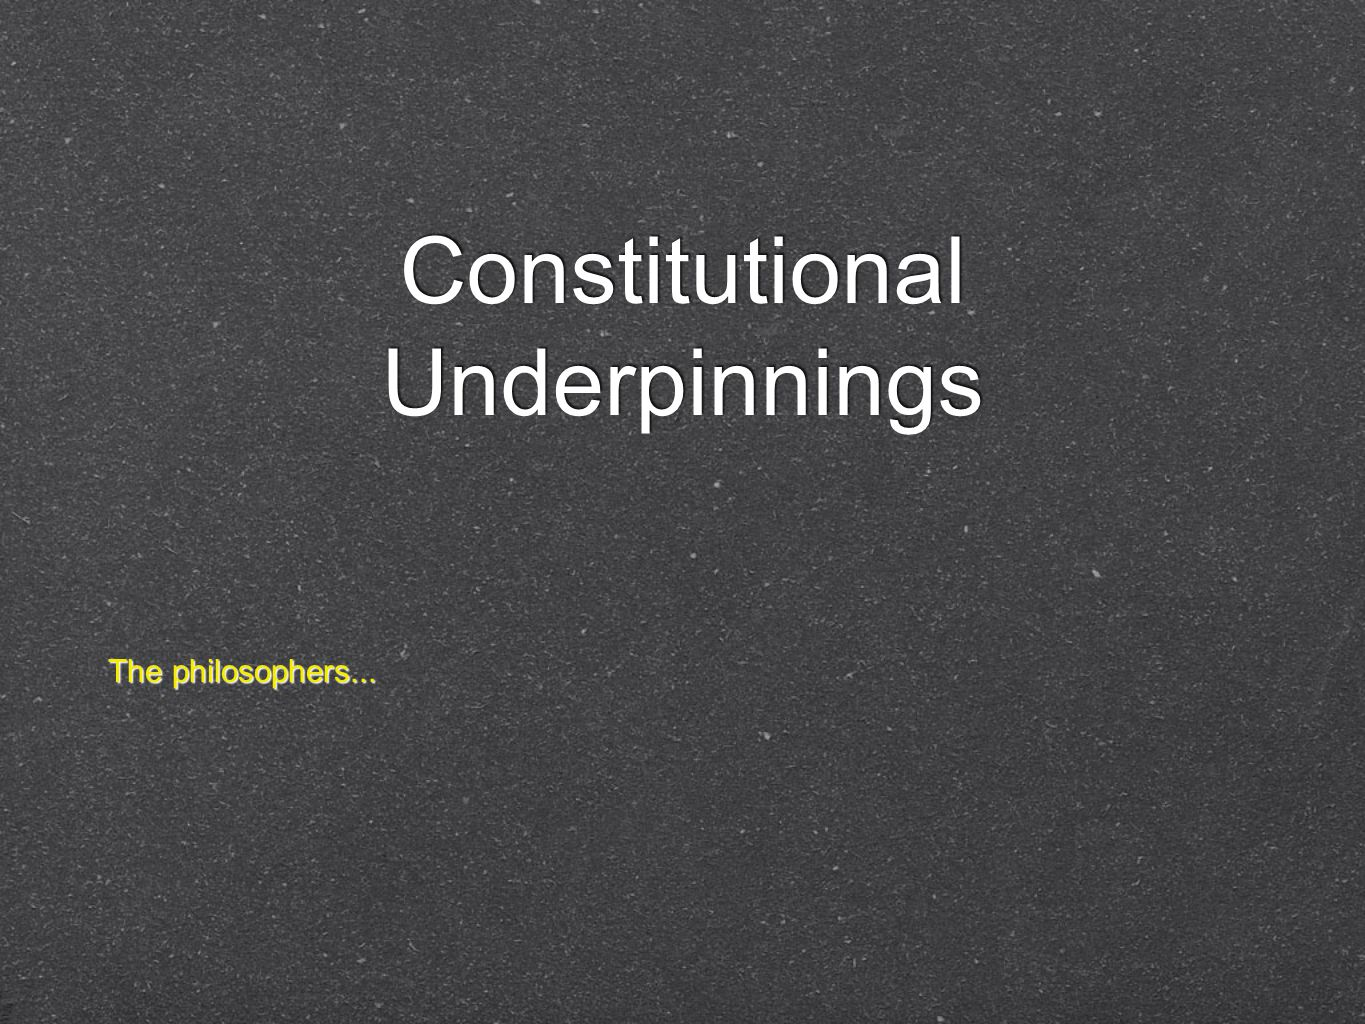 Constitutional Underpinnings The philosophers...